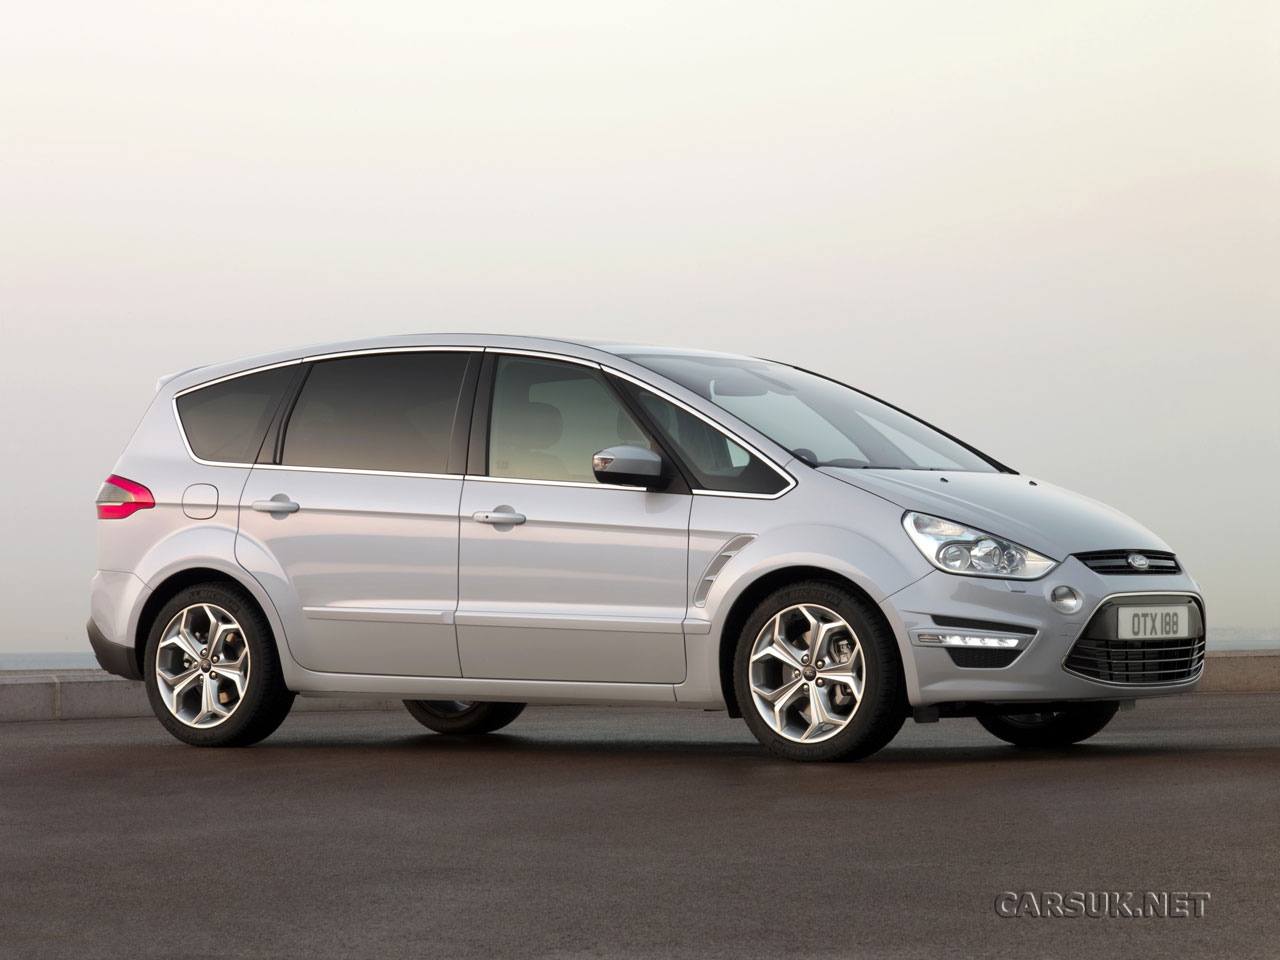 Ford S-Max 2.3 2013 photo - 8